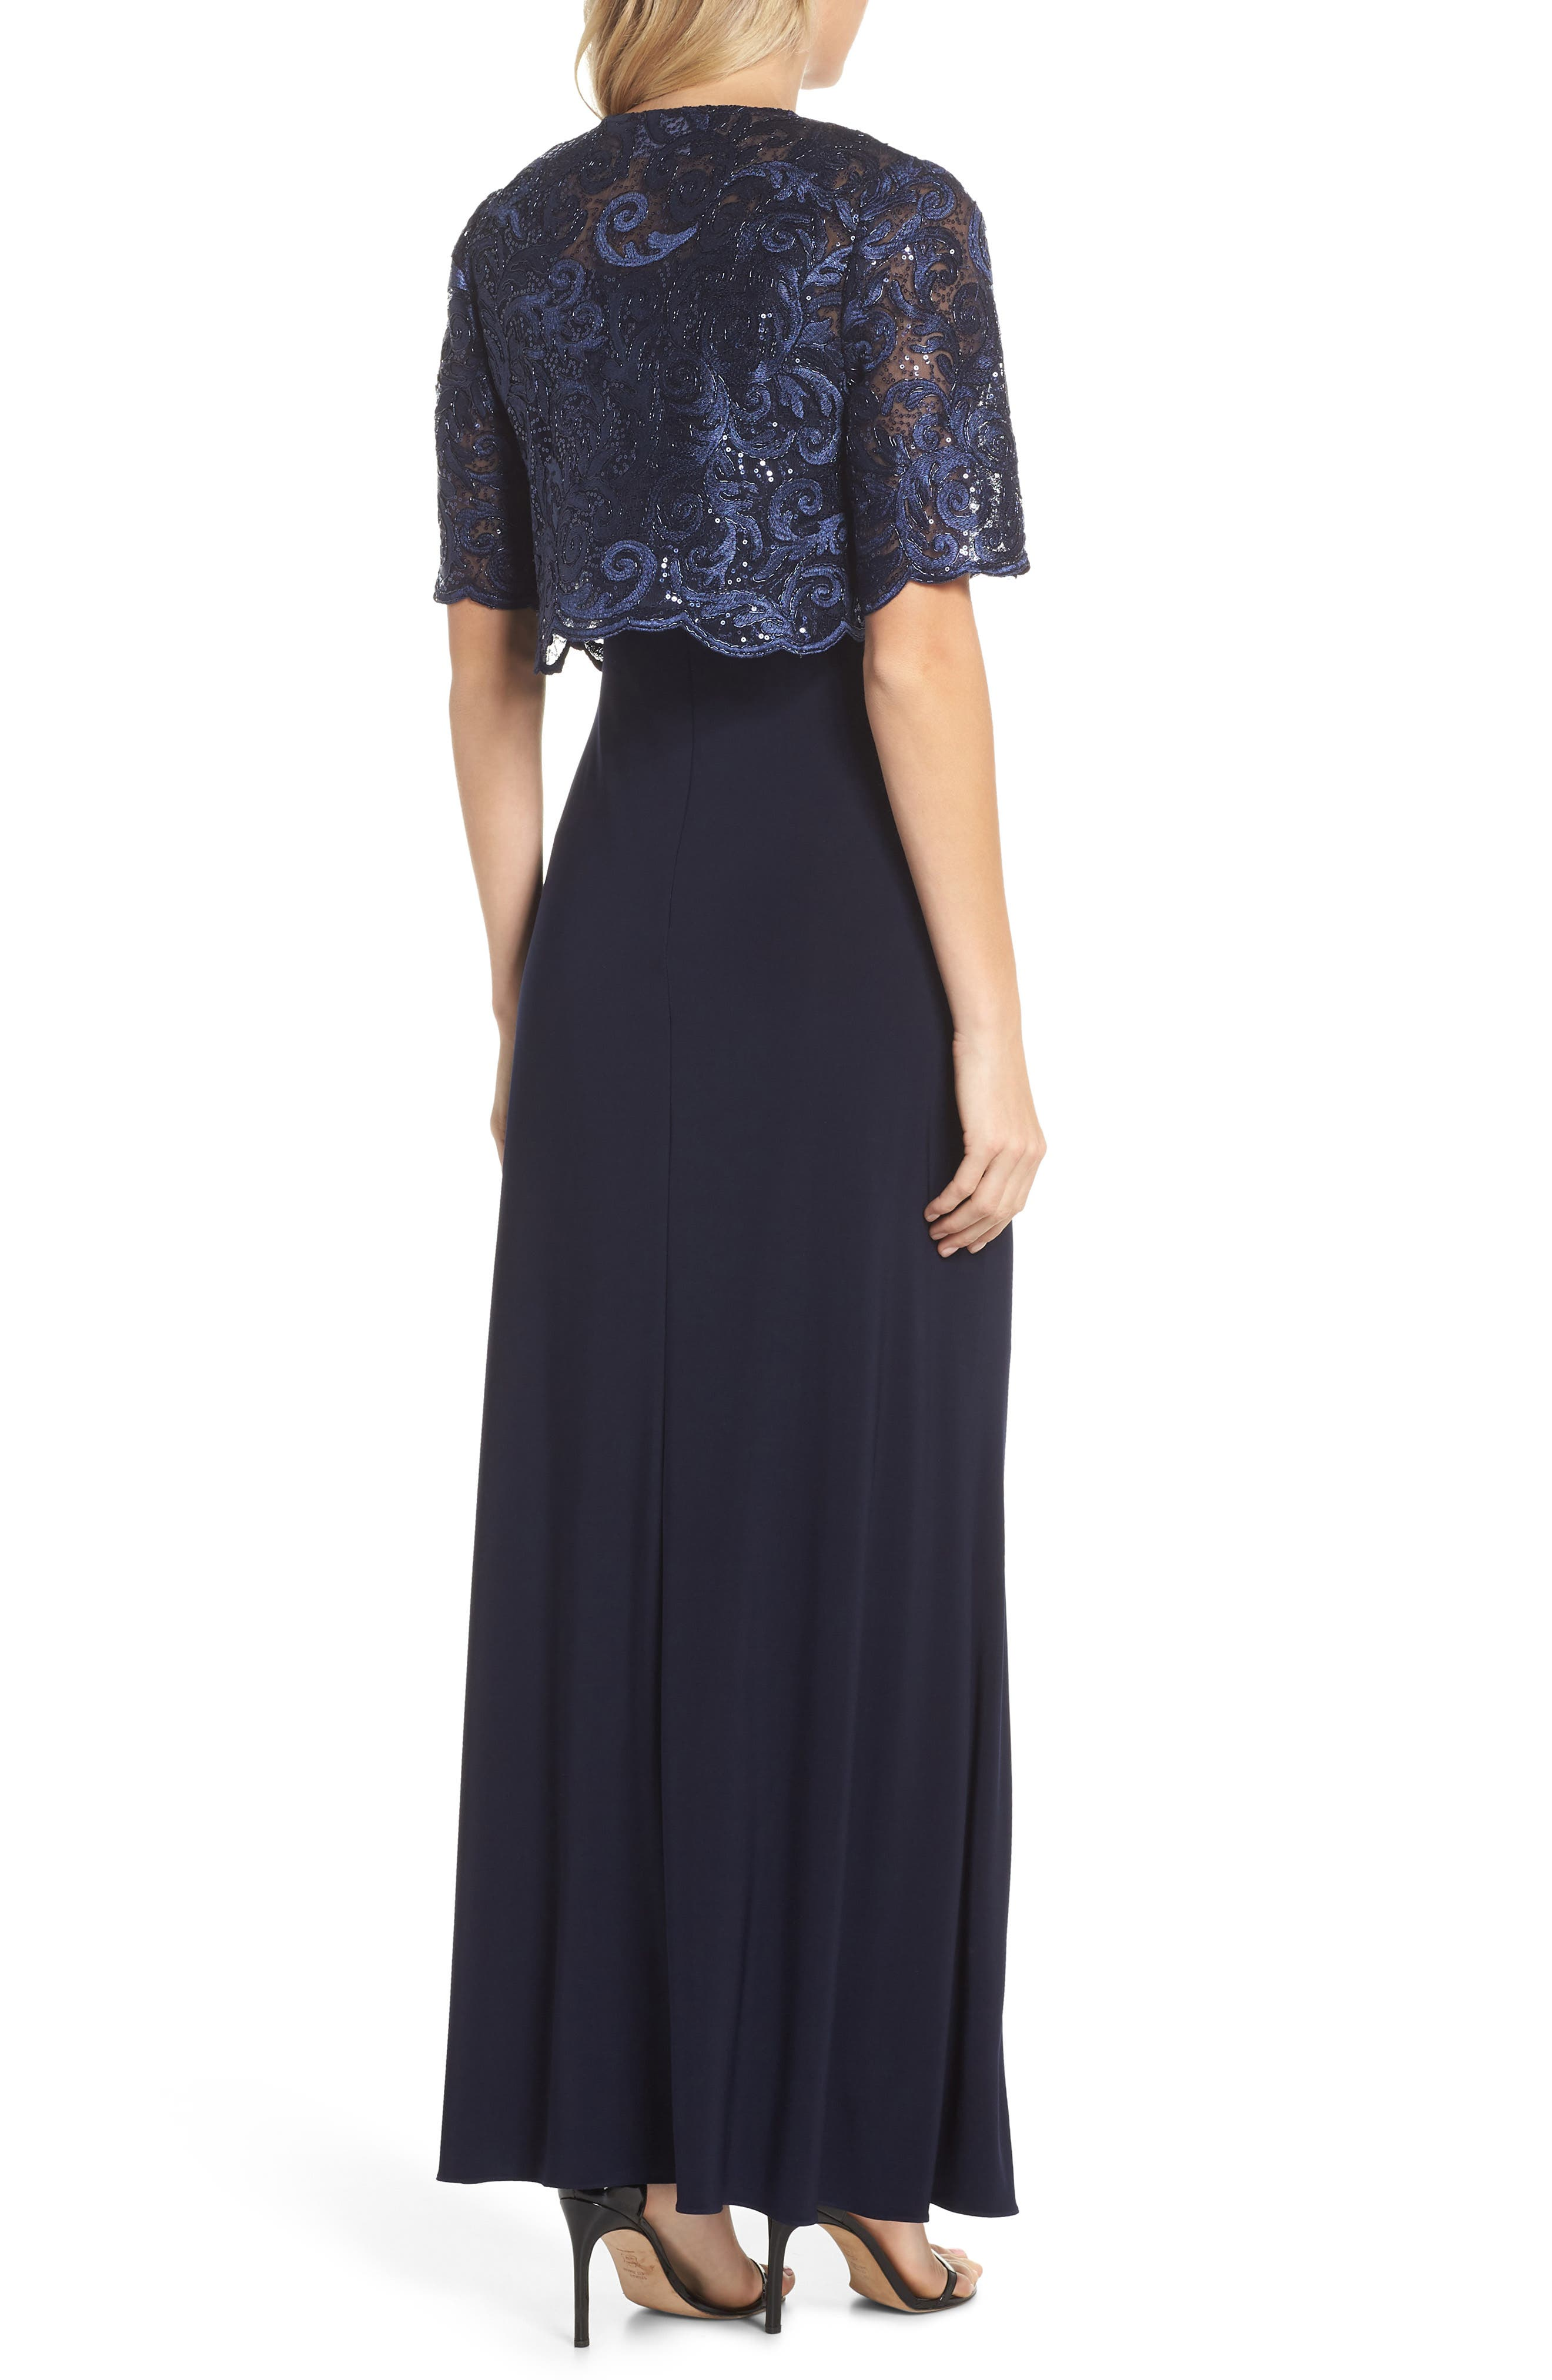 Sequin Embellished Gown with Bolero Jacket,                             Alternate thumbnail 4, color,                             Navy